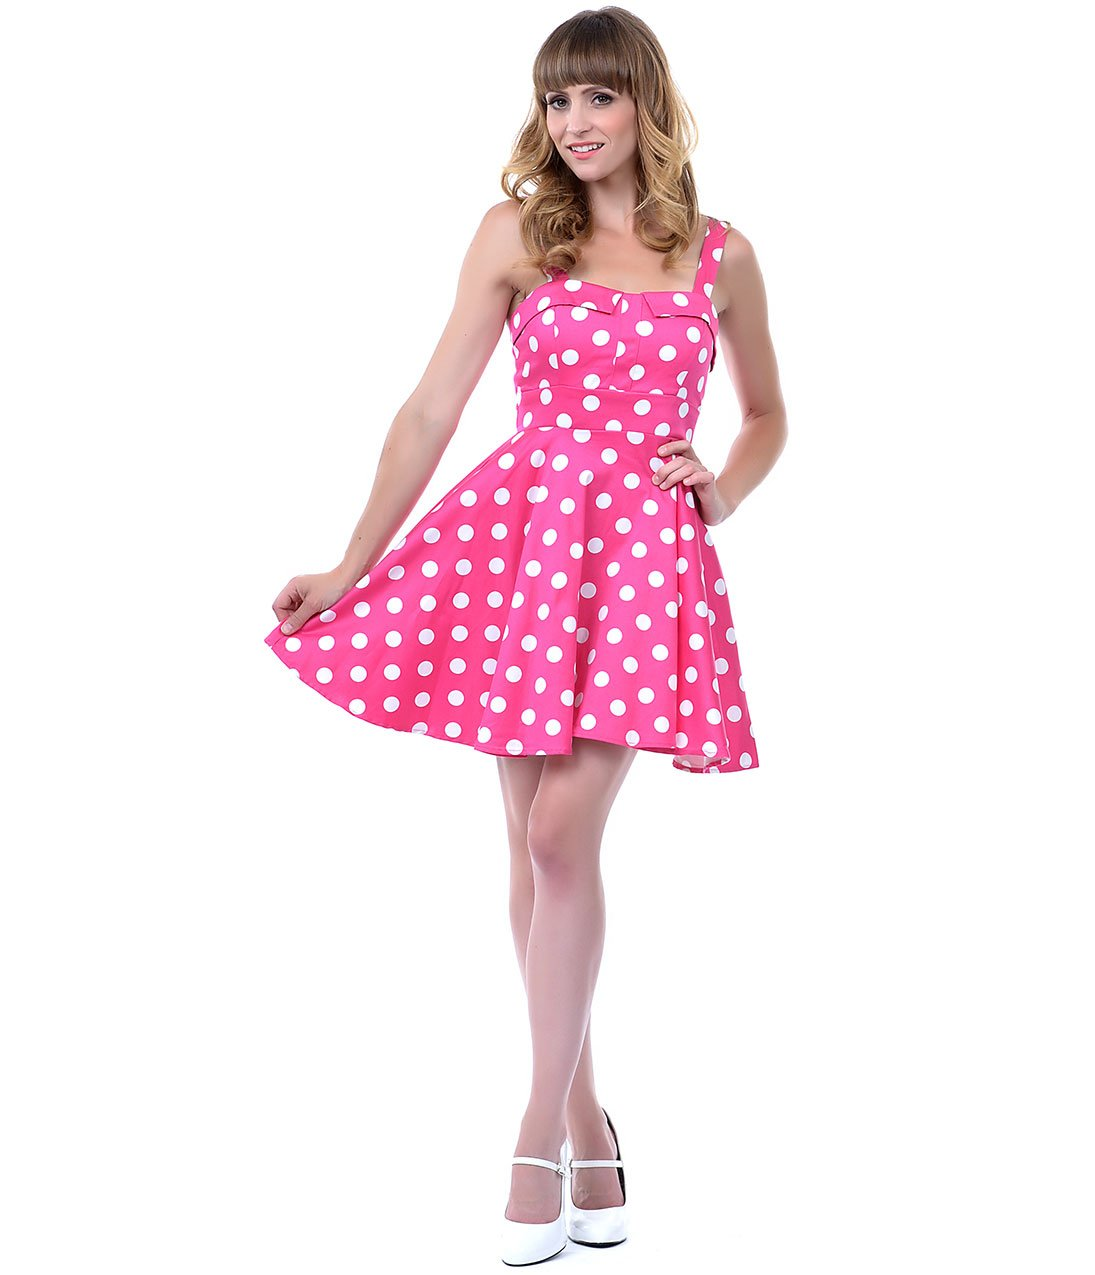 Minnie Mouse costume pink polka dot dress with WHITE panty (available in sizes 12 month 2t,3t,4t,5t minnieschild. 5 out of 5 stars Vintage Pink and White Polka Dots Rayon Dress Plus Size Made in USA RosaDeTecido. out of 5 stars () $